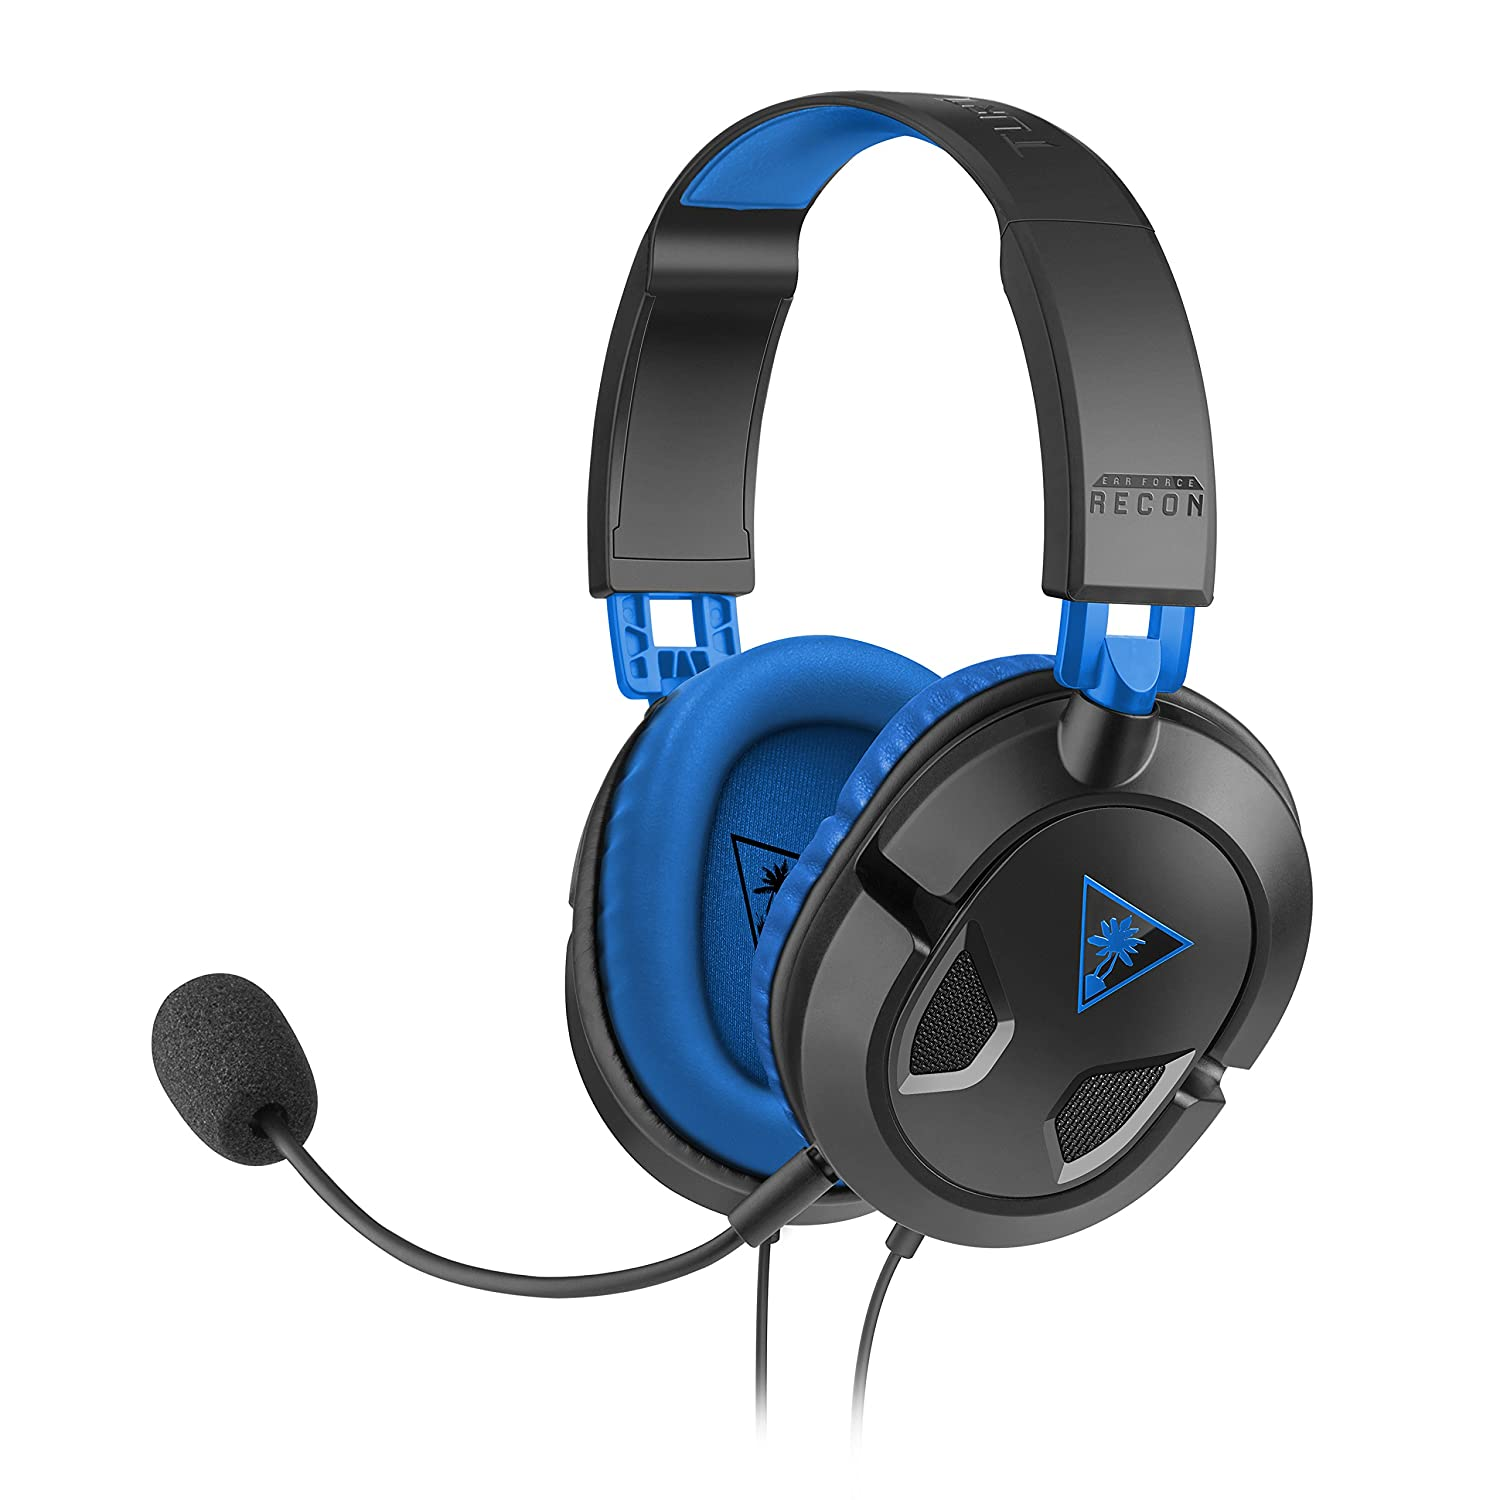 Turtle Beach 60P gaming headset